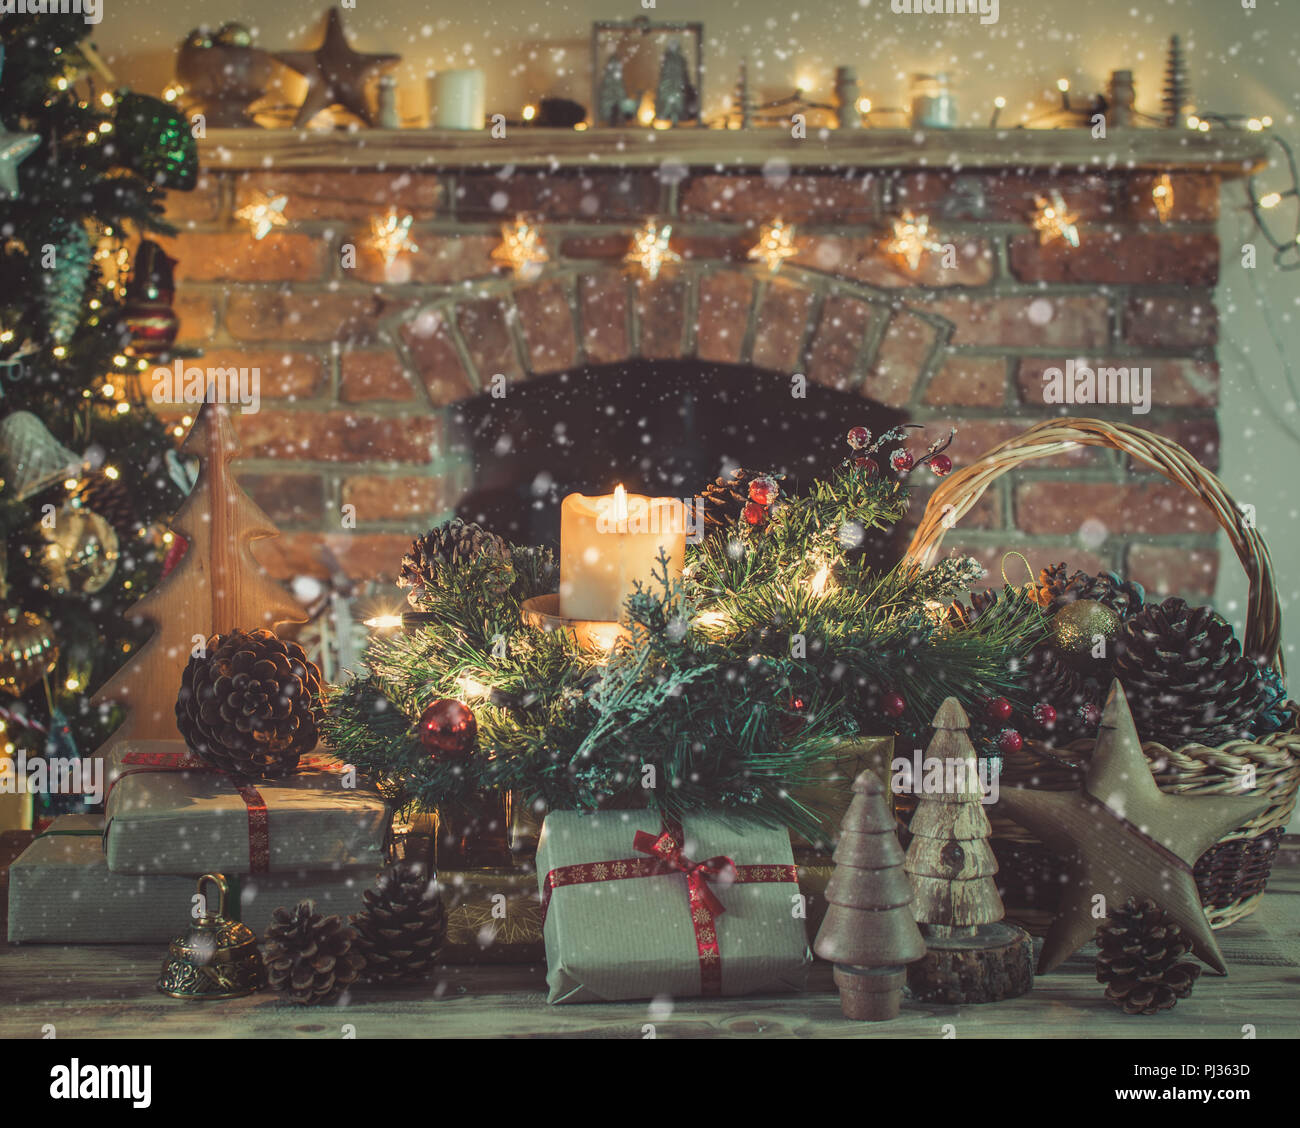 cosy christmas presents and decorations on the table in front of fireplace with woodburner lit up christmas tree with baubles and ornaments and garl